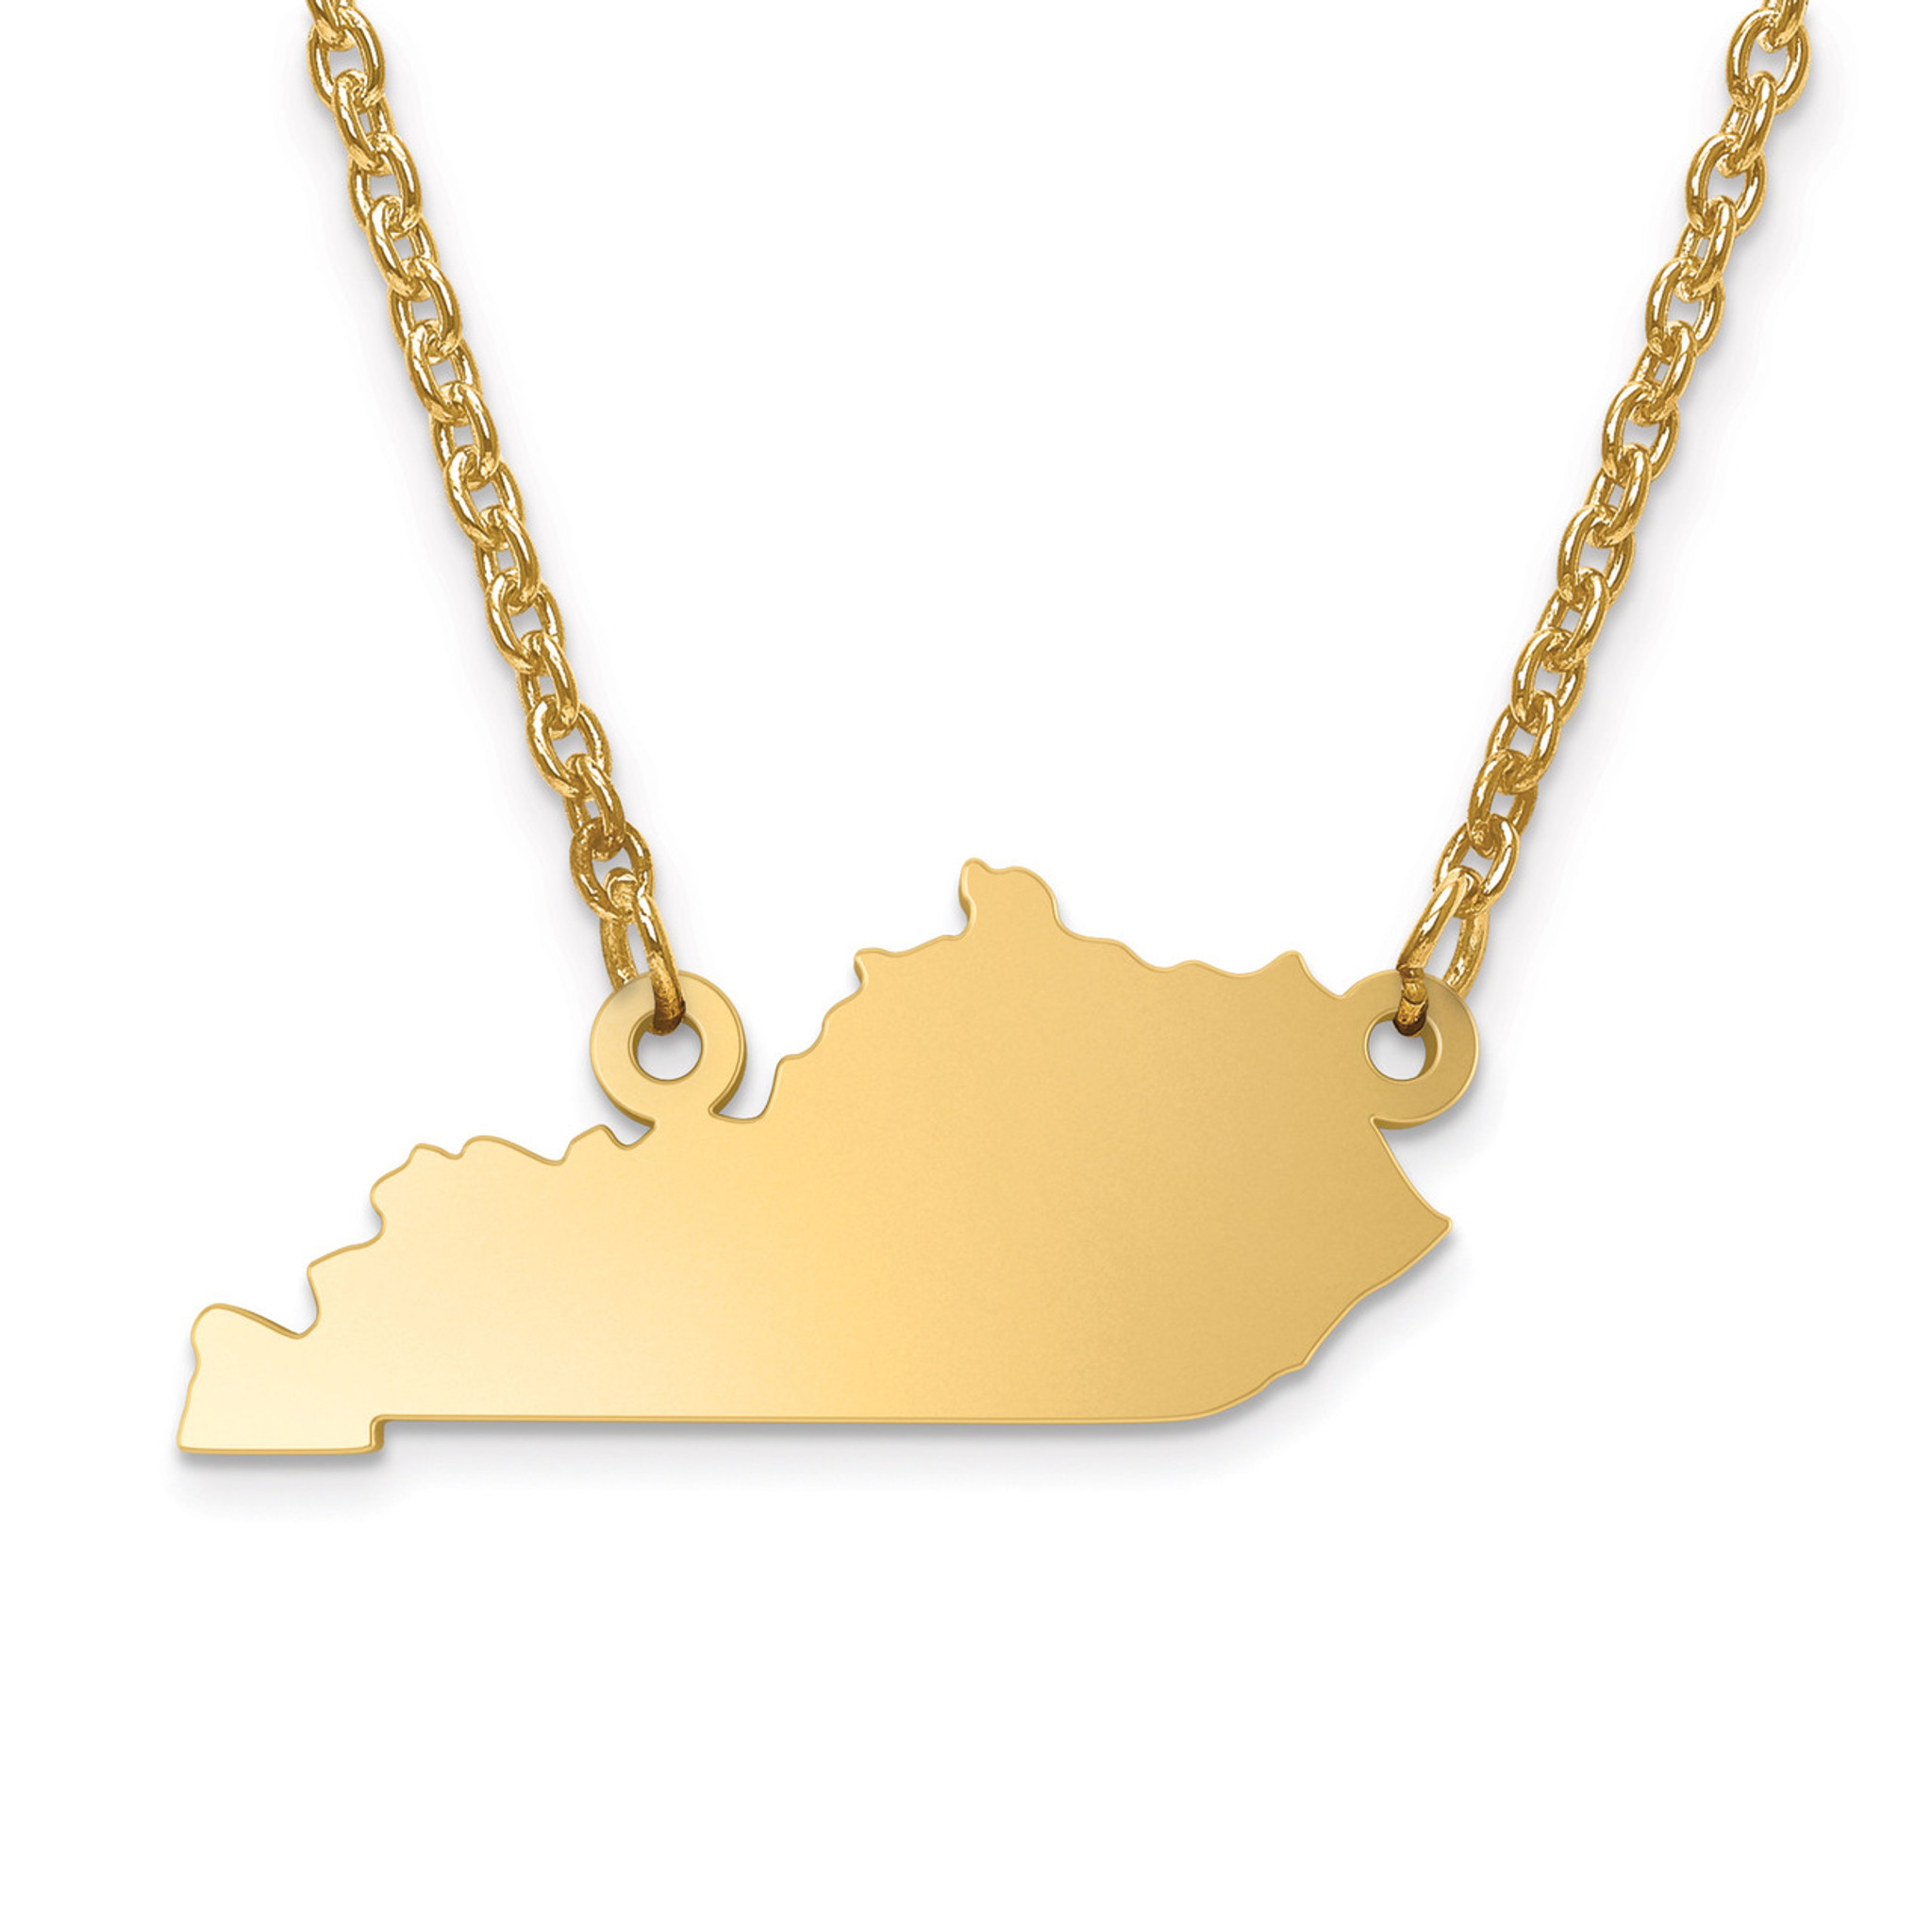 kentucky state pendant with chain engravable gold plated